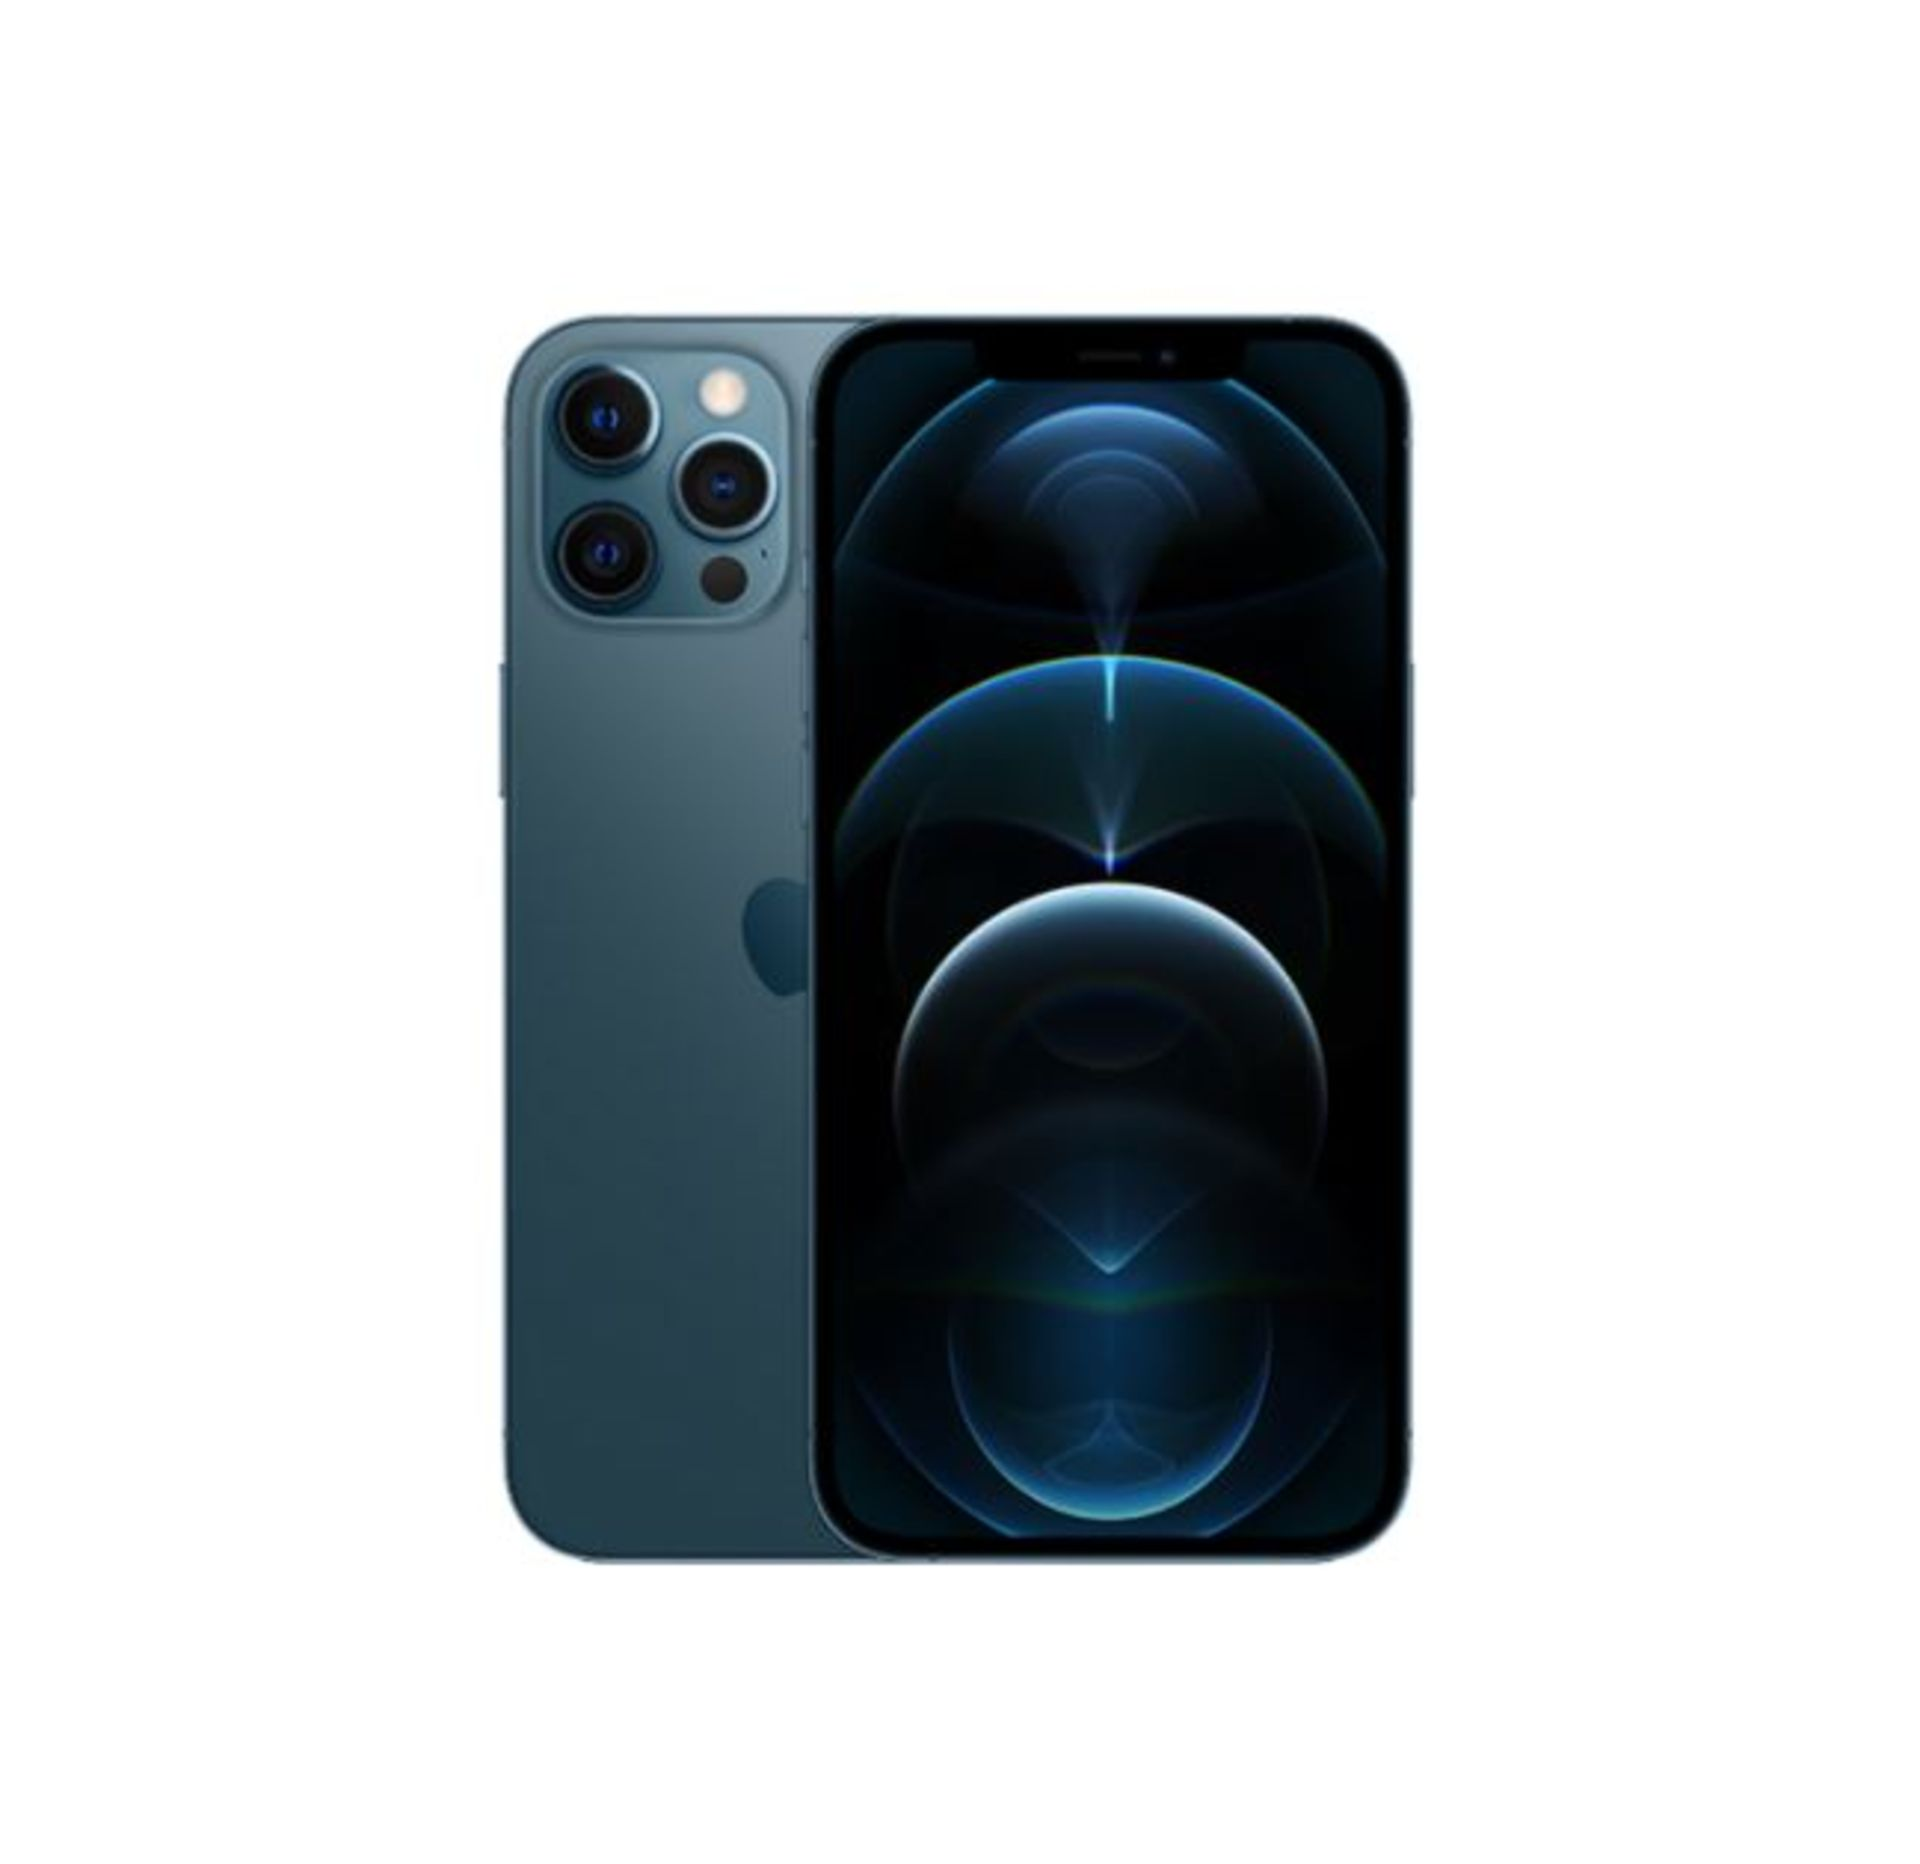 1 BOXED APPLE IPHONE 12 PRO MAX PACIFIC BLUE 256GB RRP £1199 (APPLE WARRANTY TILL DECEMBER 2021)